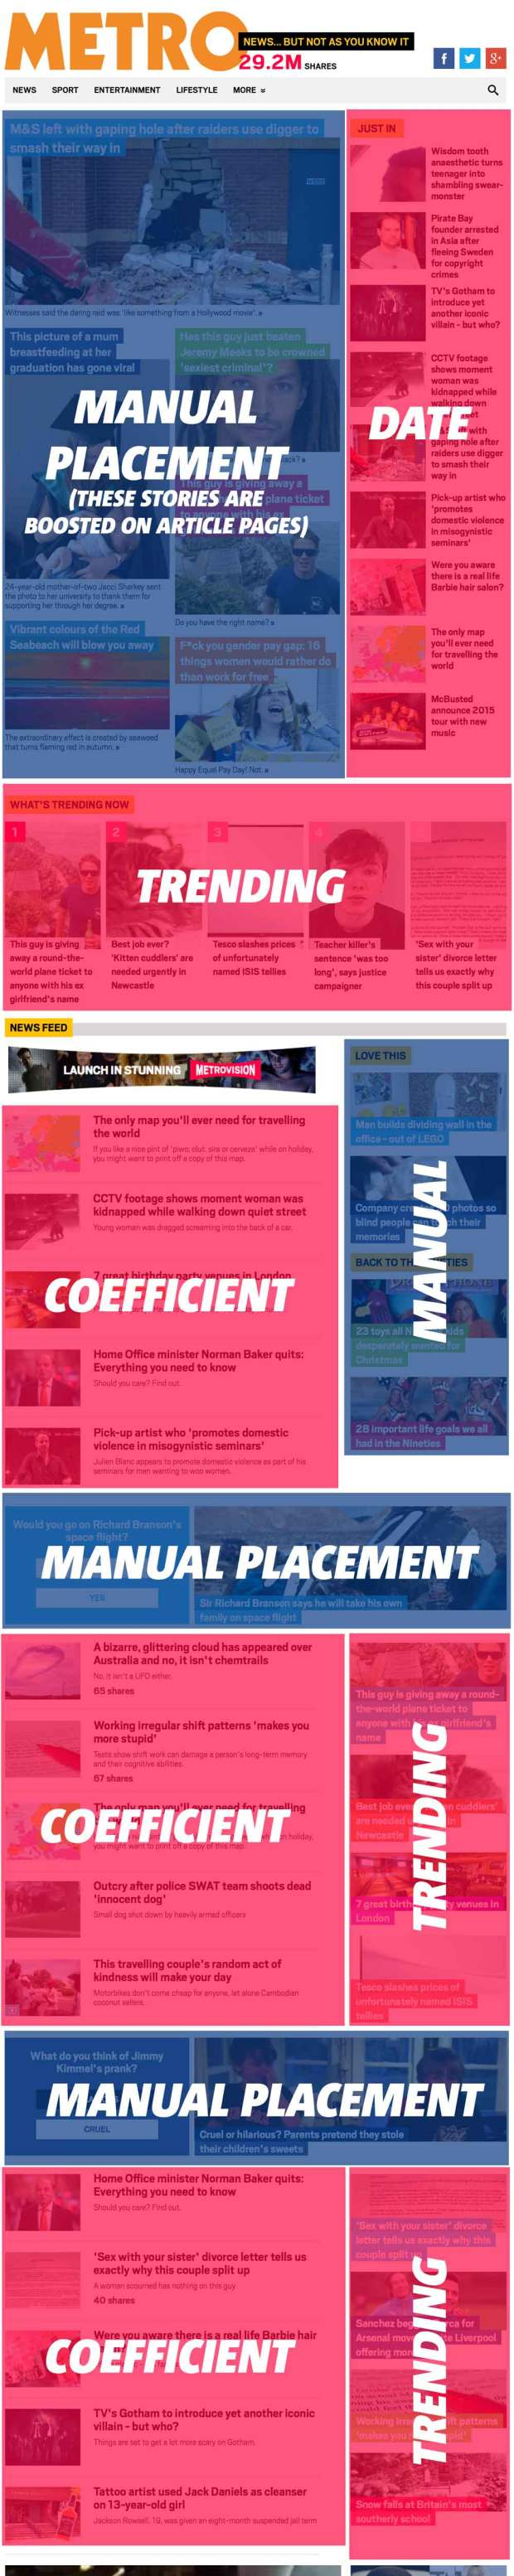 Metro Homepage Placements